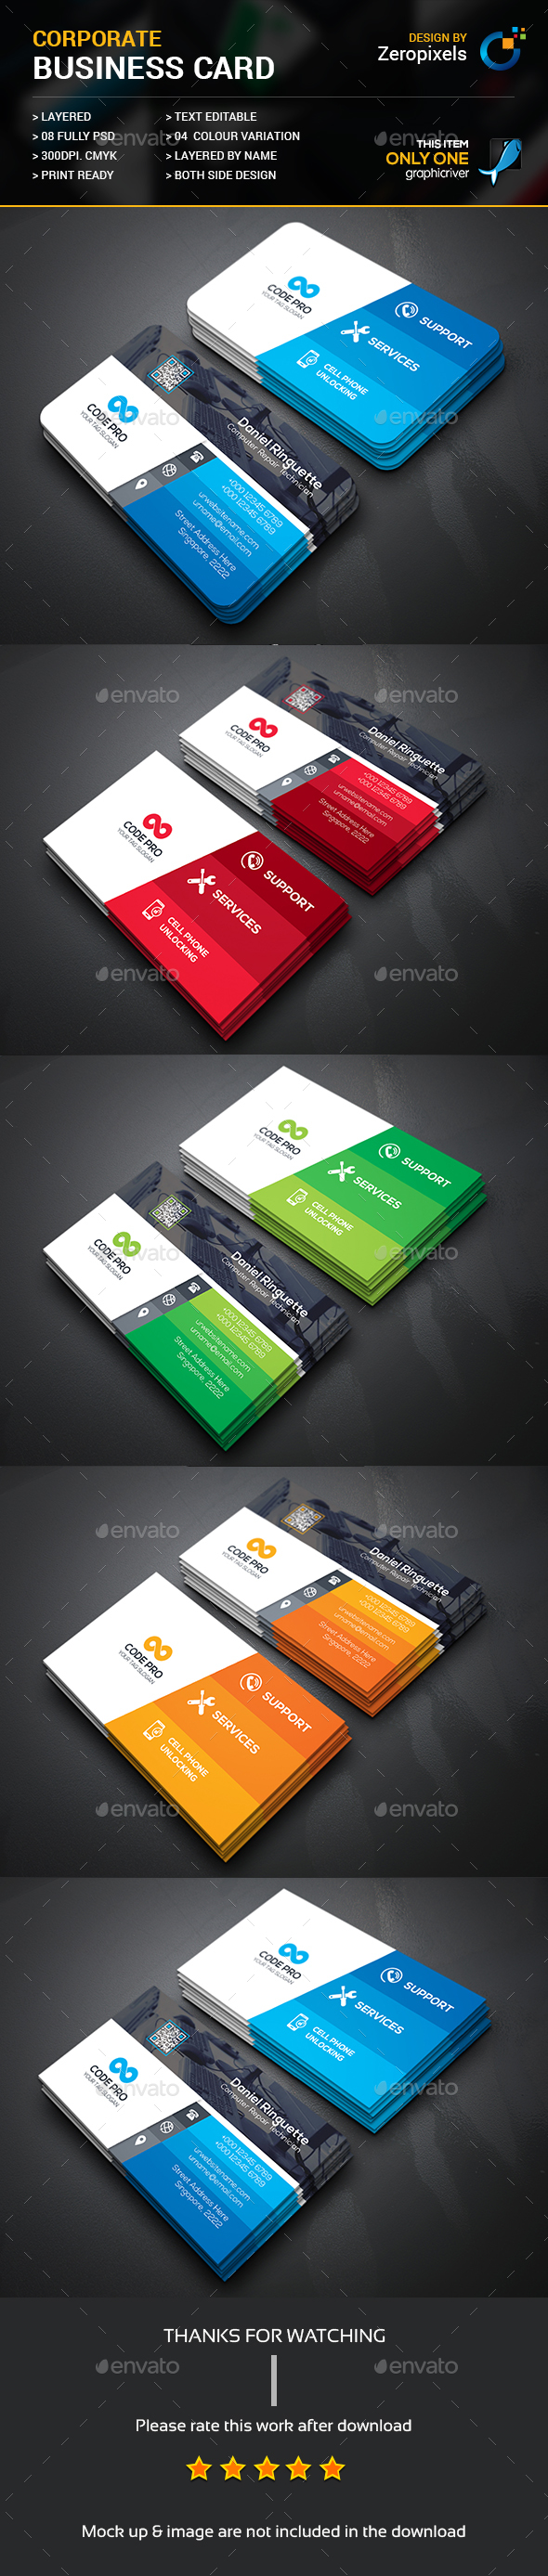 Medical business card template psd mind on design pinterest medical business card template psd flashek Choice Image